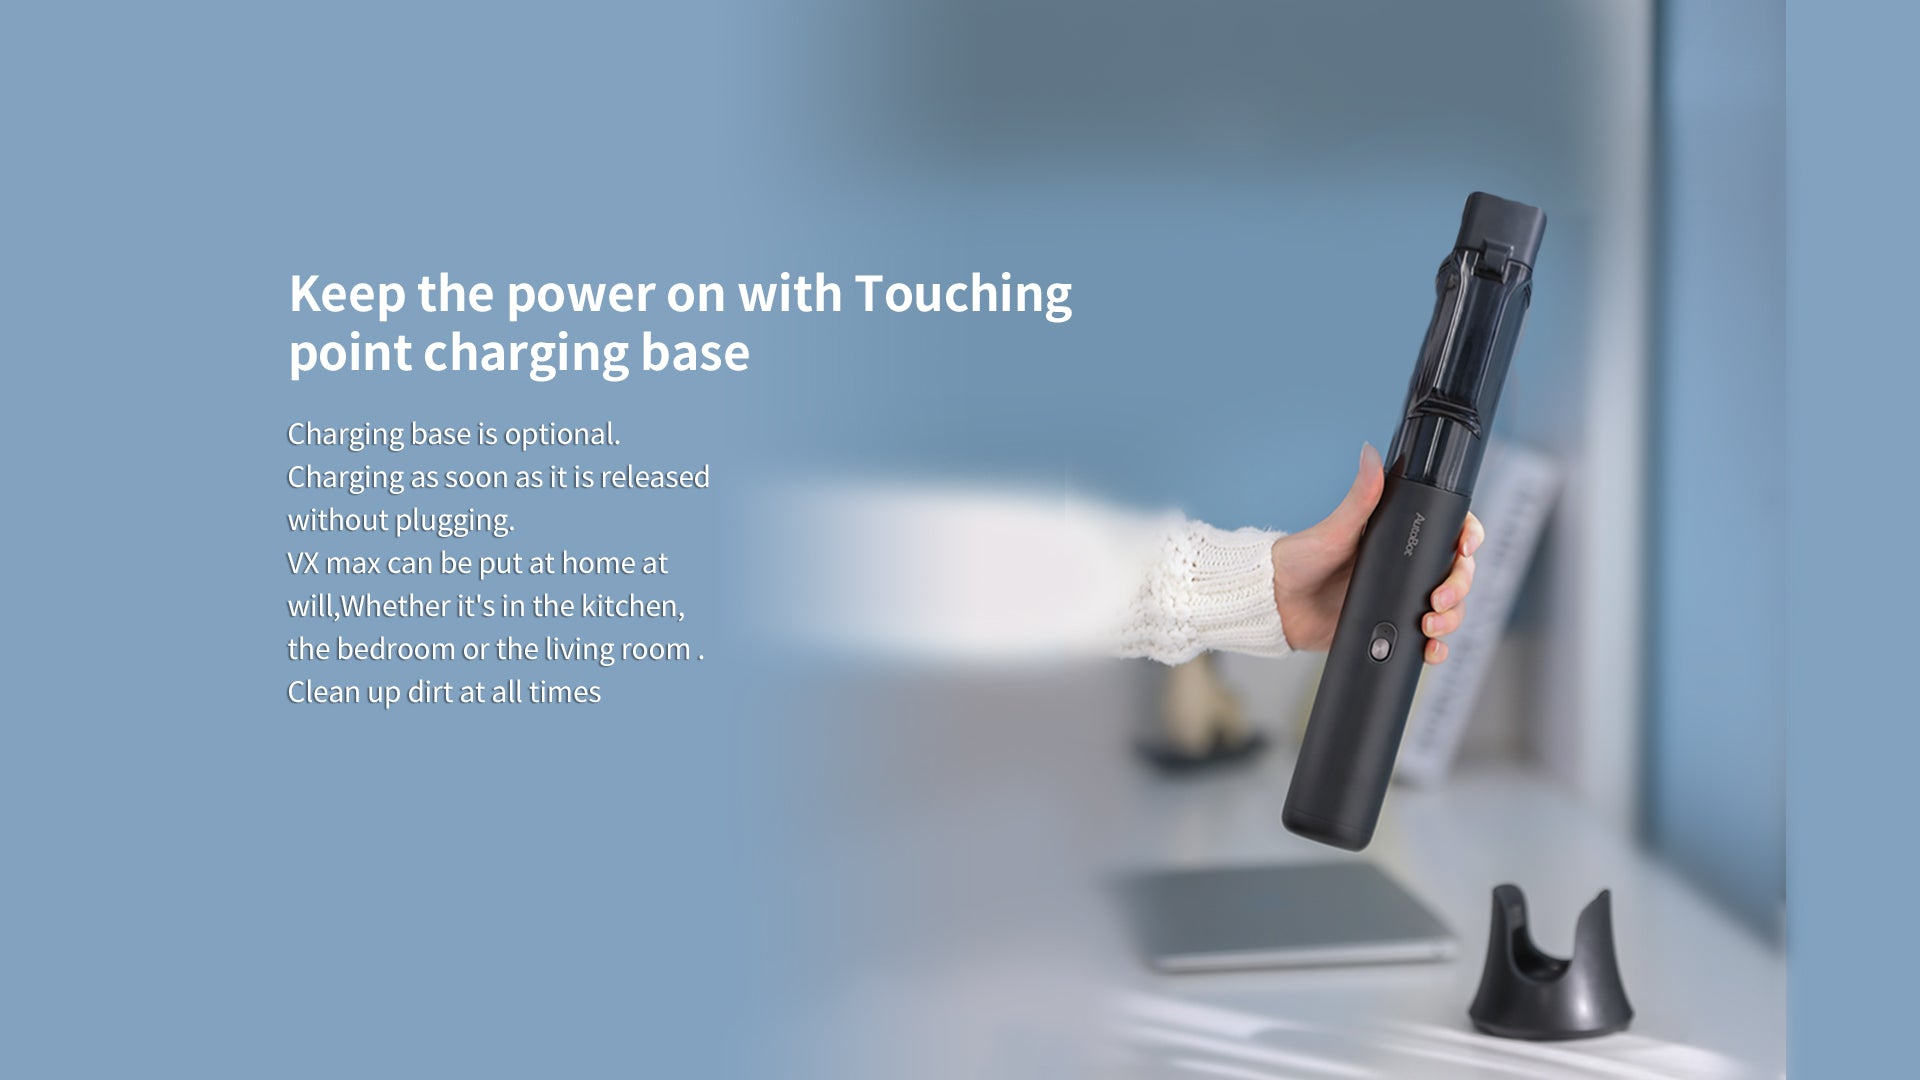 Keep the power on with touching point charging base, charging base is optional charging as soon as it is released without plugging.